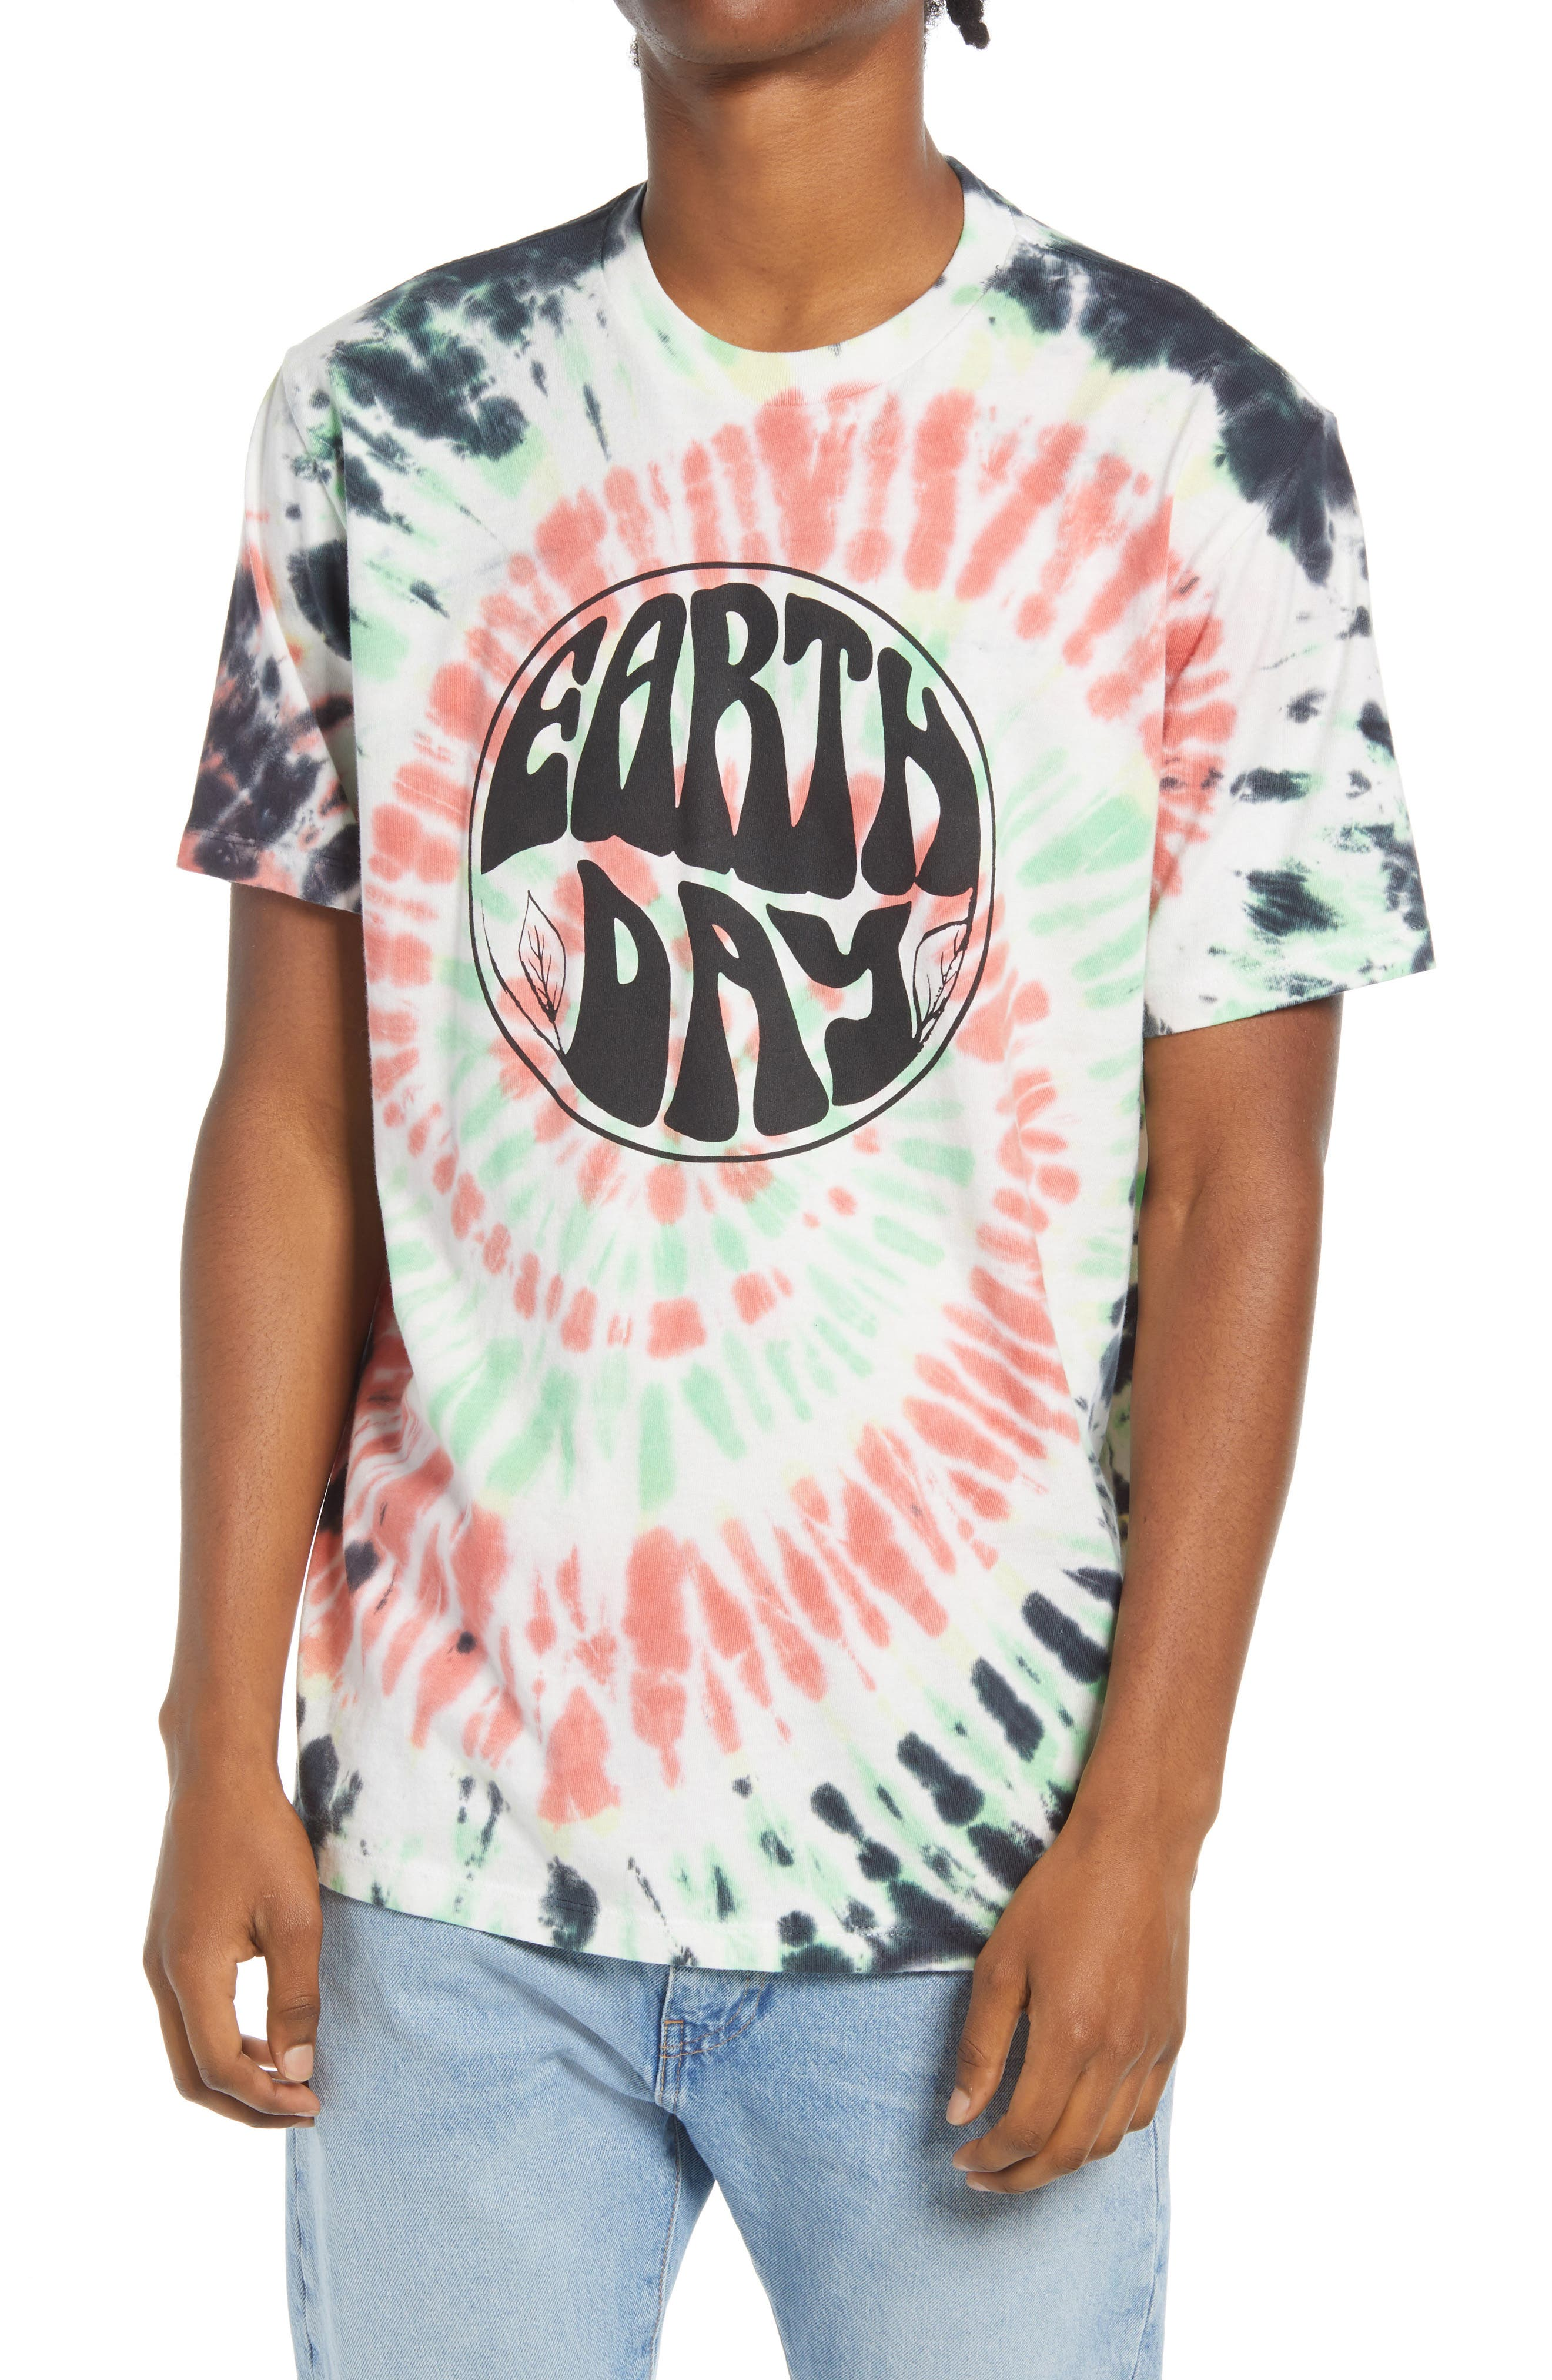 Earth Day Graphic Tee